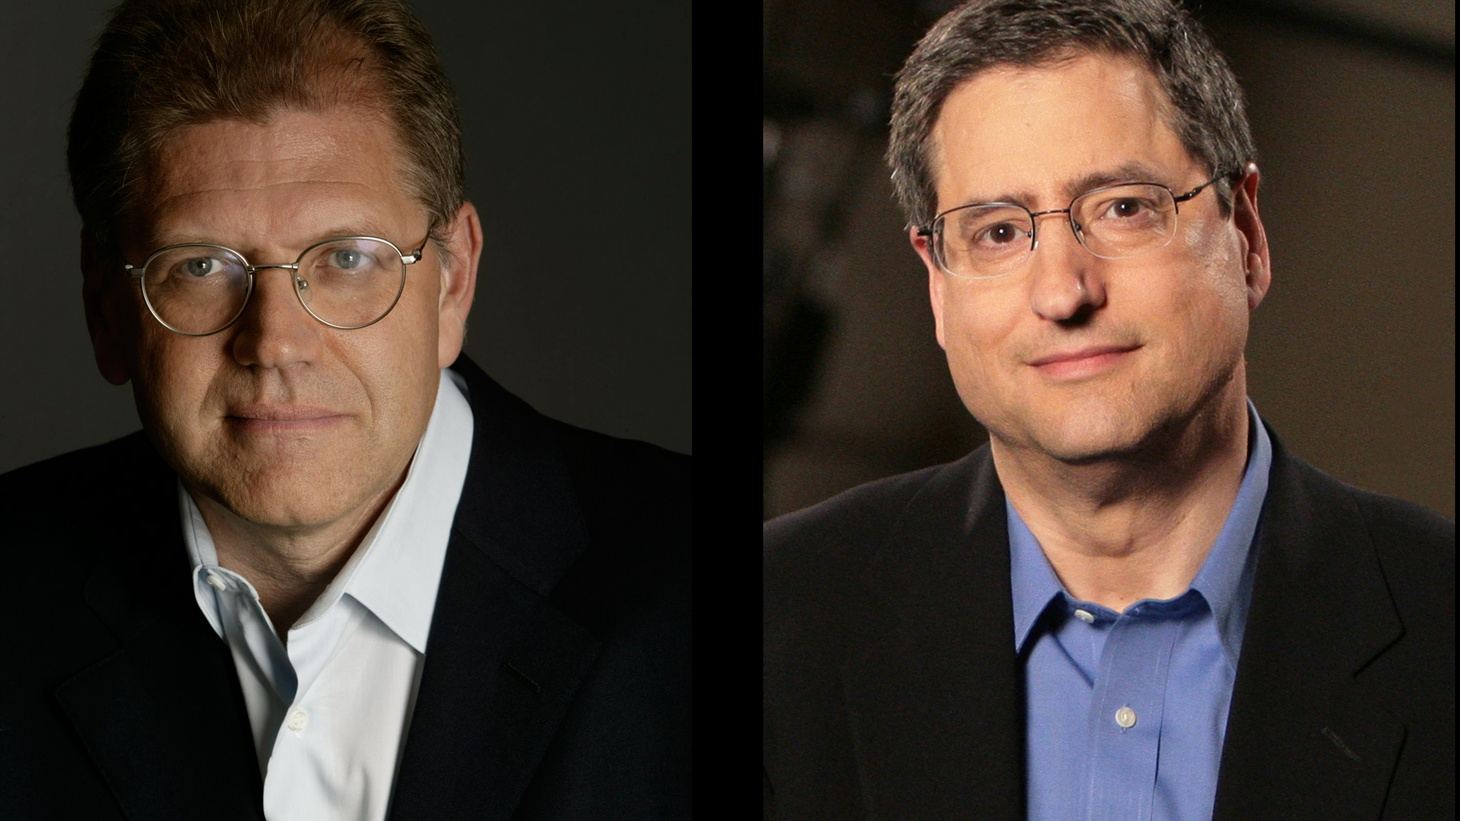 """Robert Zemeckis and Tom Rothman discuss difficulties in large studio filmmaking and the balance of making an """"anti-authoritarian"""" film that the entire family can enjoy."""